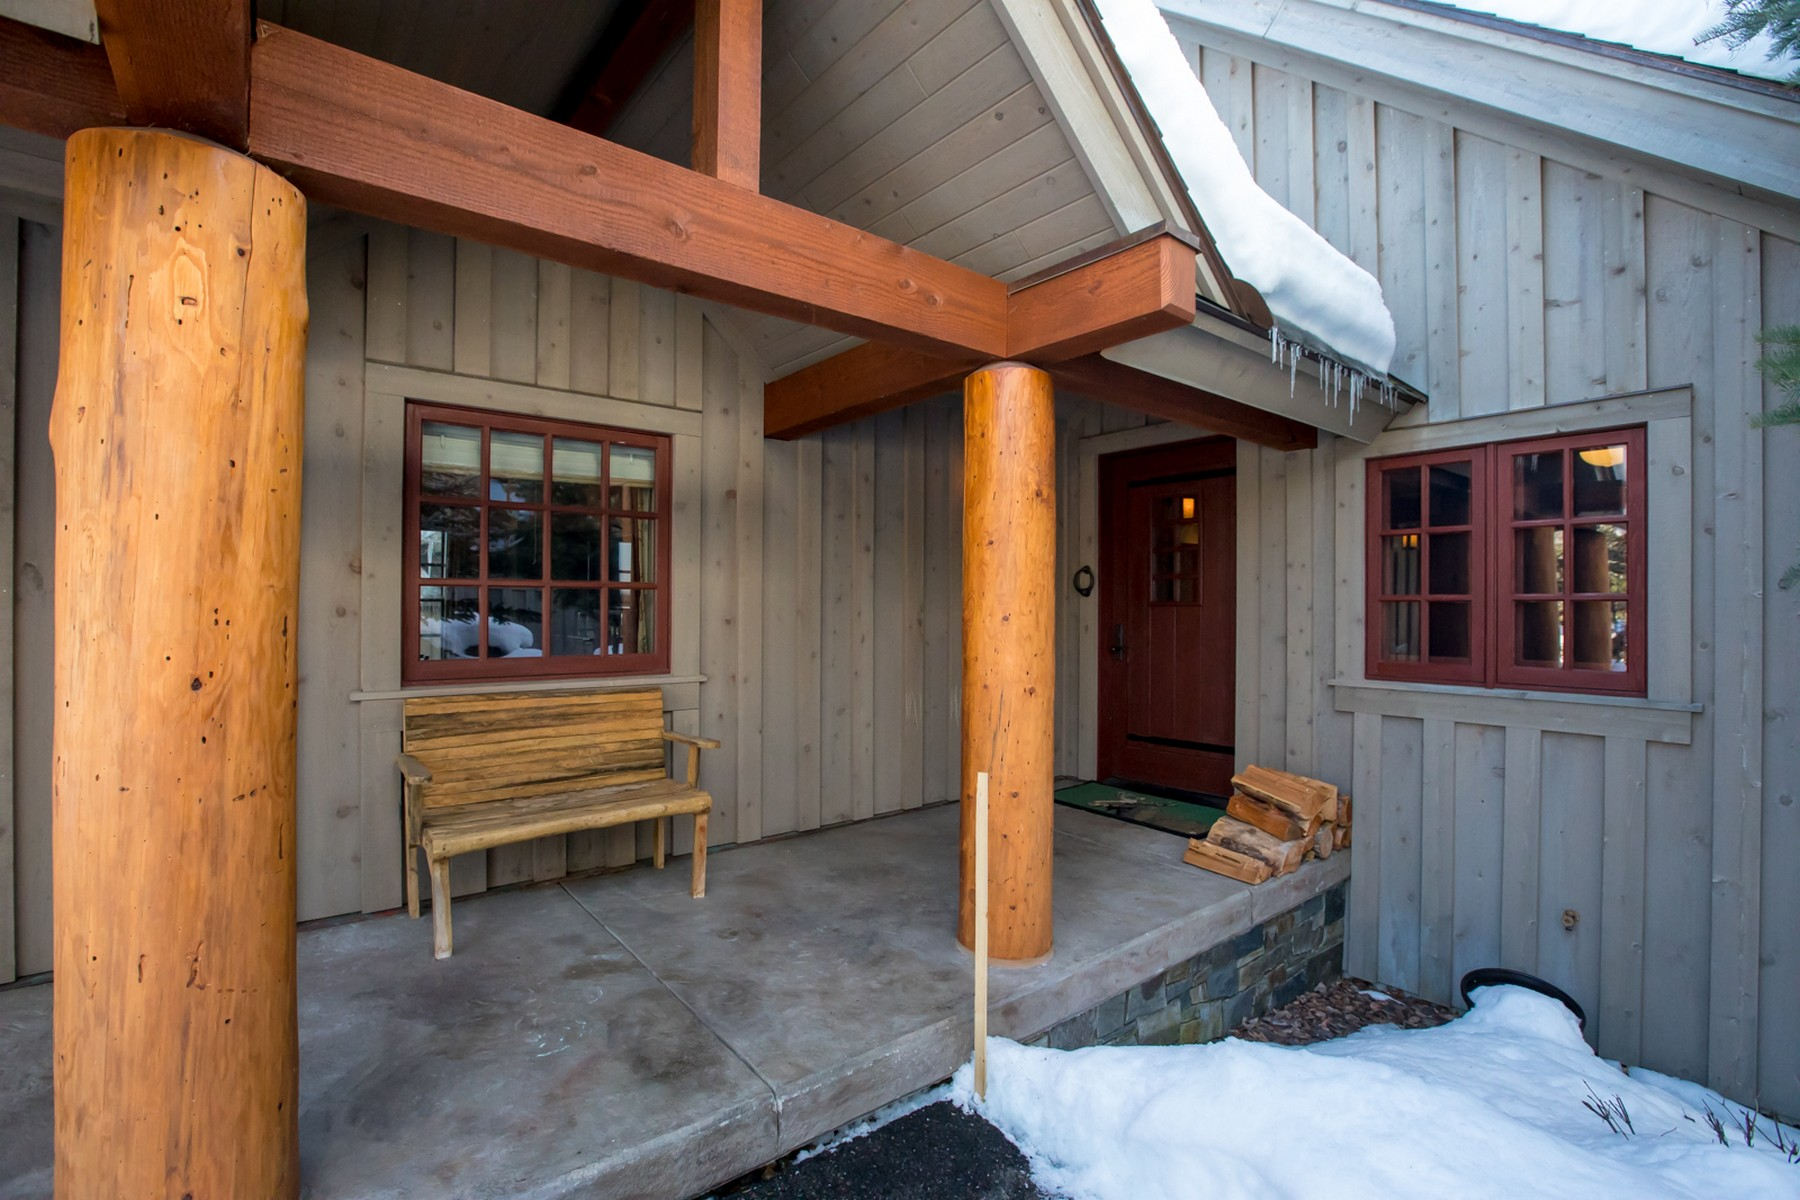 Additional photo for property listing at 2071 Silverberry Ln , Whitefish, MT 59937 2071  Silverberry Ln Whitefish, Montana 59937 United States